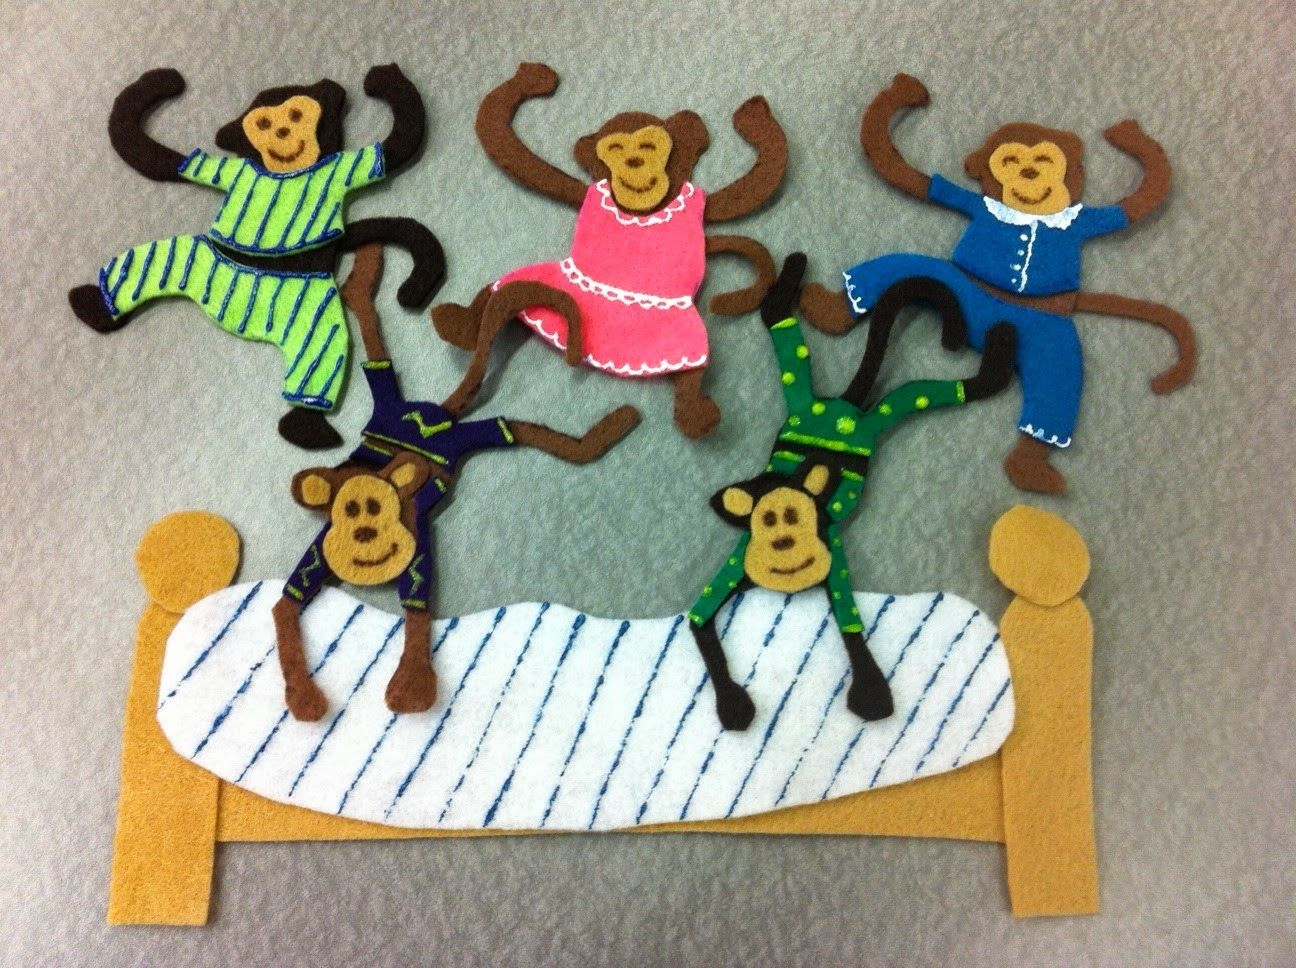 Flannel Friday Five Little Monkeys (Jumping on the Bed